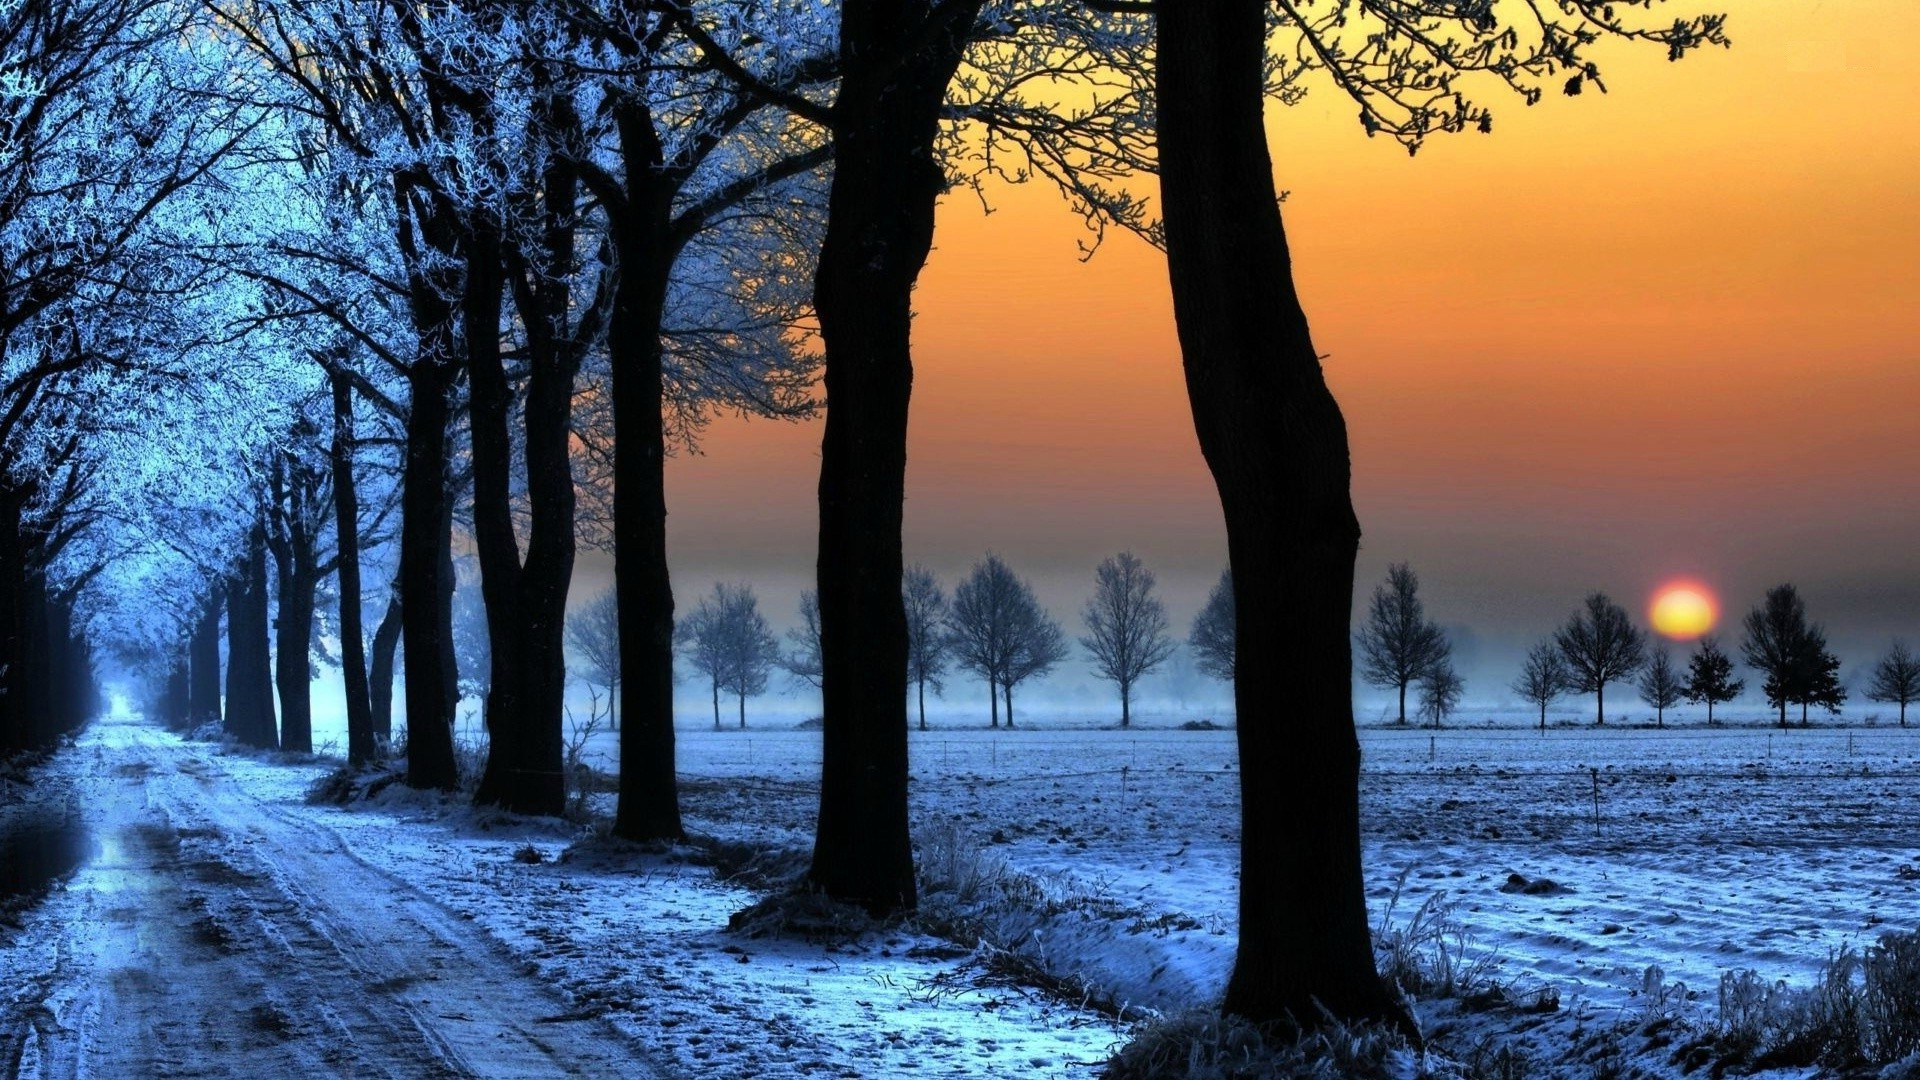 Providing you widescreen high defination New hd wallpapers for desktop  .Choose one of the best